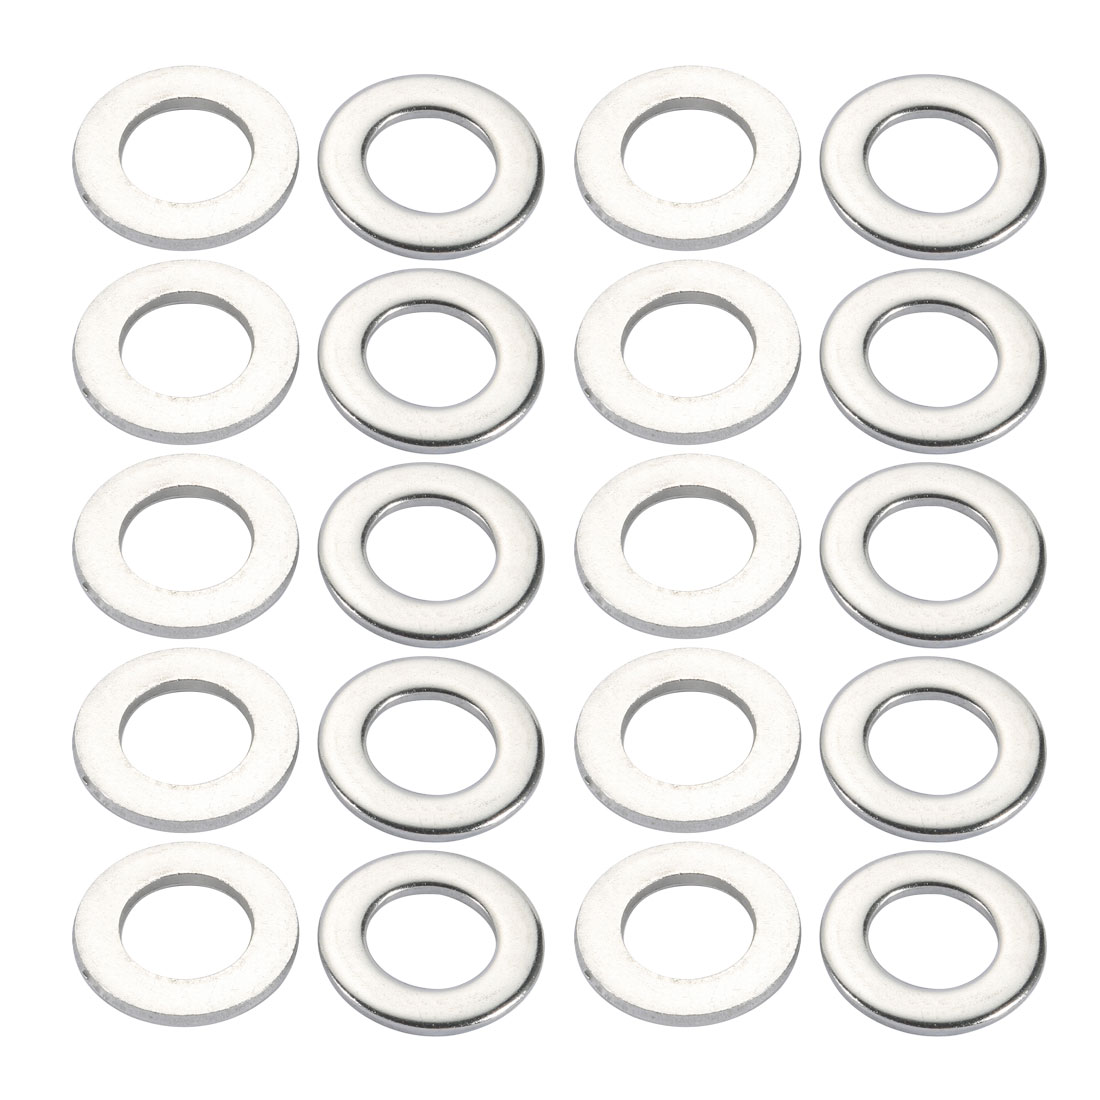 M18x34mmx3mm DIN125 316 Stainless Steel Flat Washer Silver Tone 20pcs